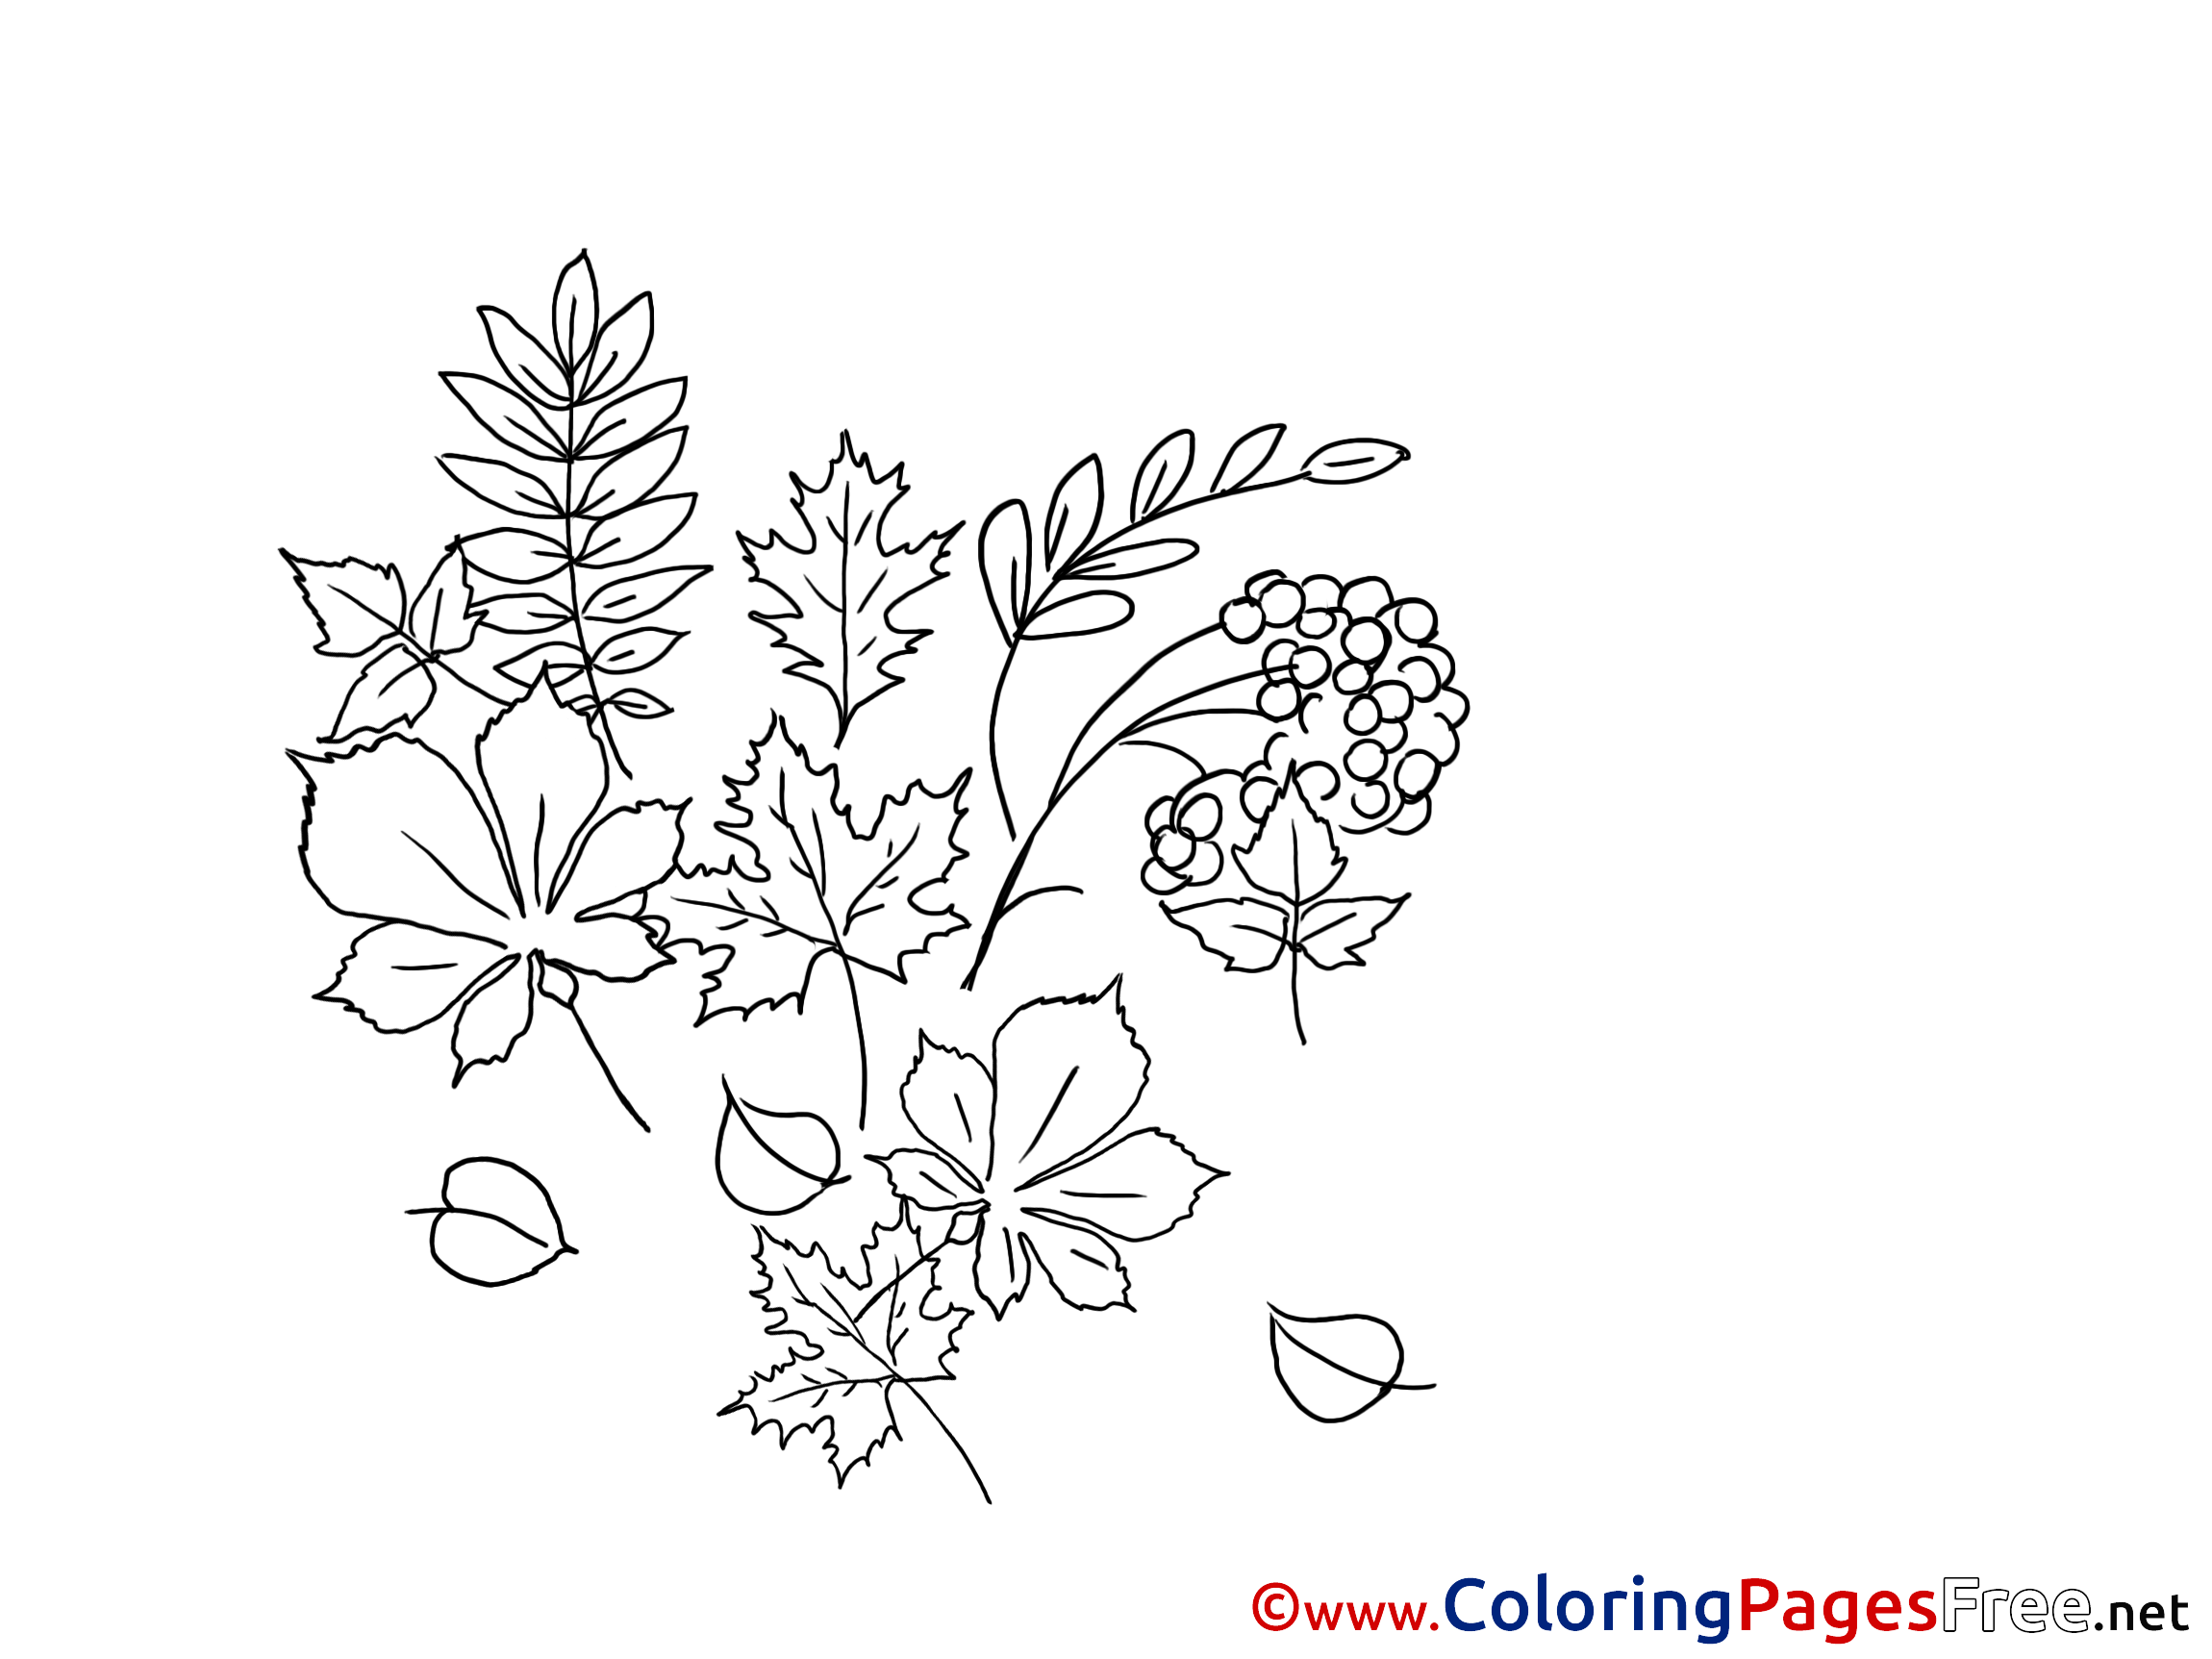 herbs coloring pages - photo#39